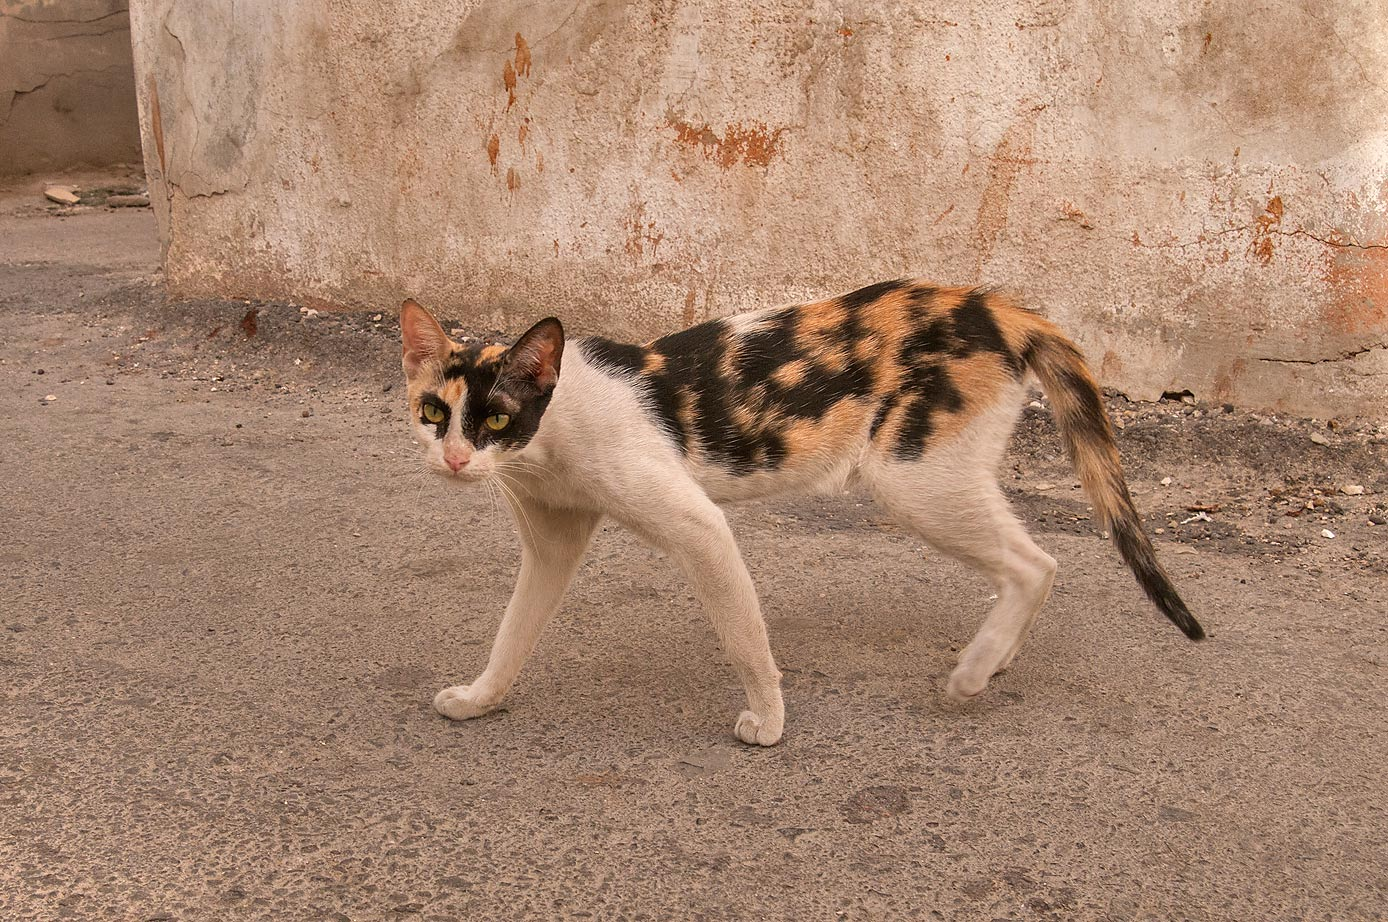 Calico cat walking near Al Maymoun St., Musheirib area. Doha, Qatar